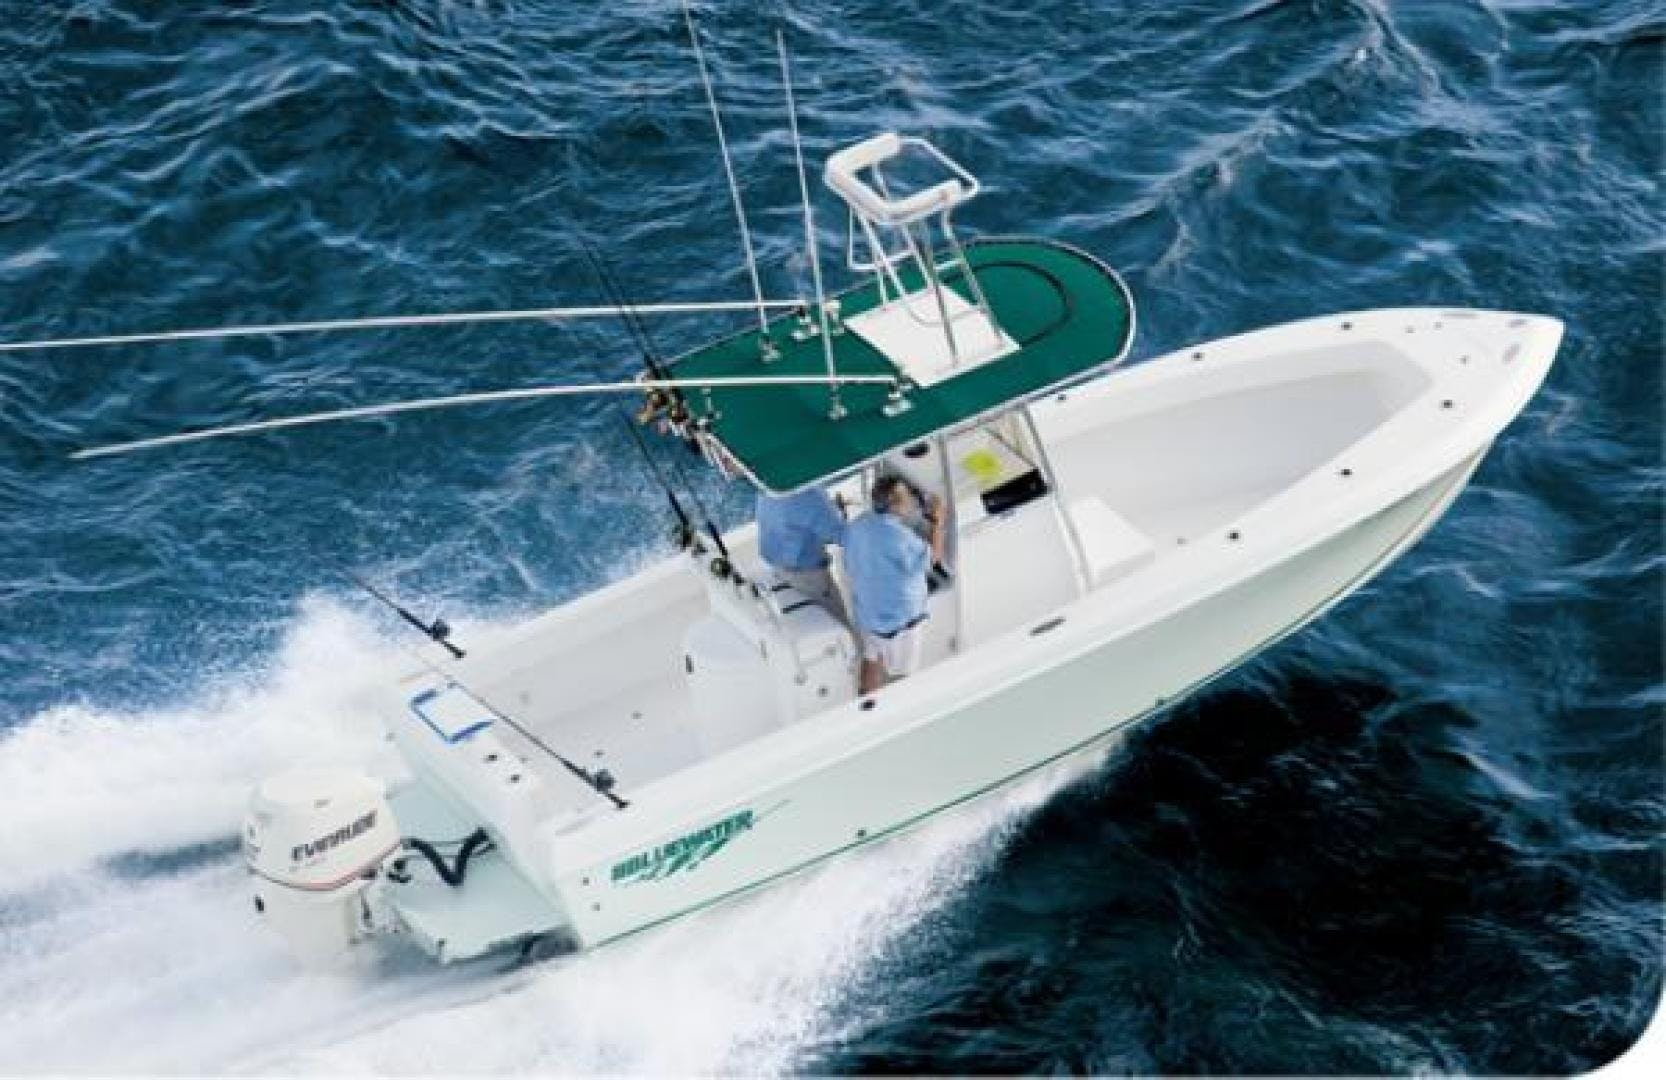 2021 Bluewater Sportfishing 22' 23t Bluewater Sportfishing 23t | Picture 3 of 7